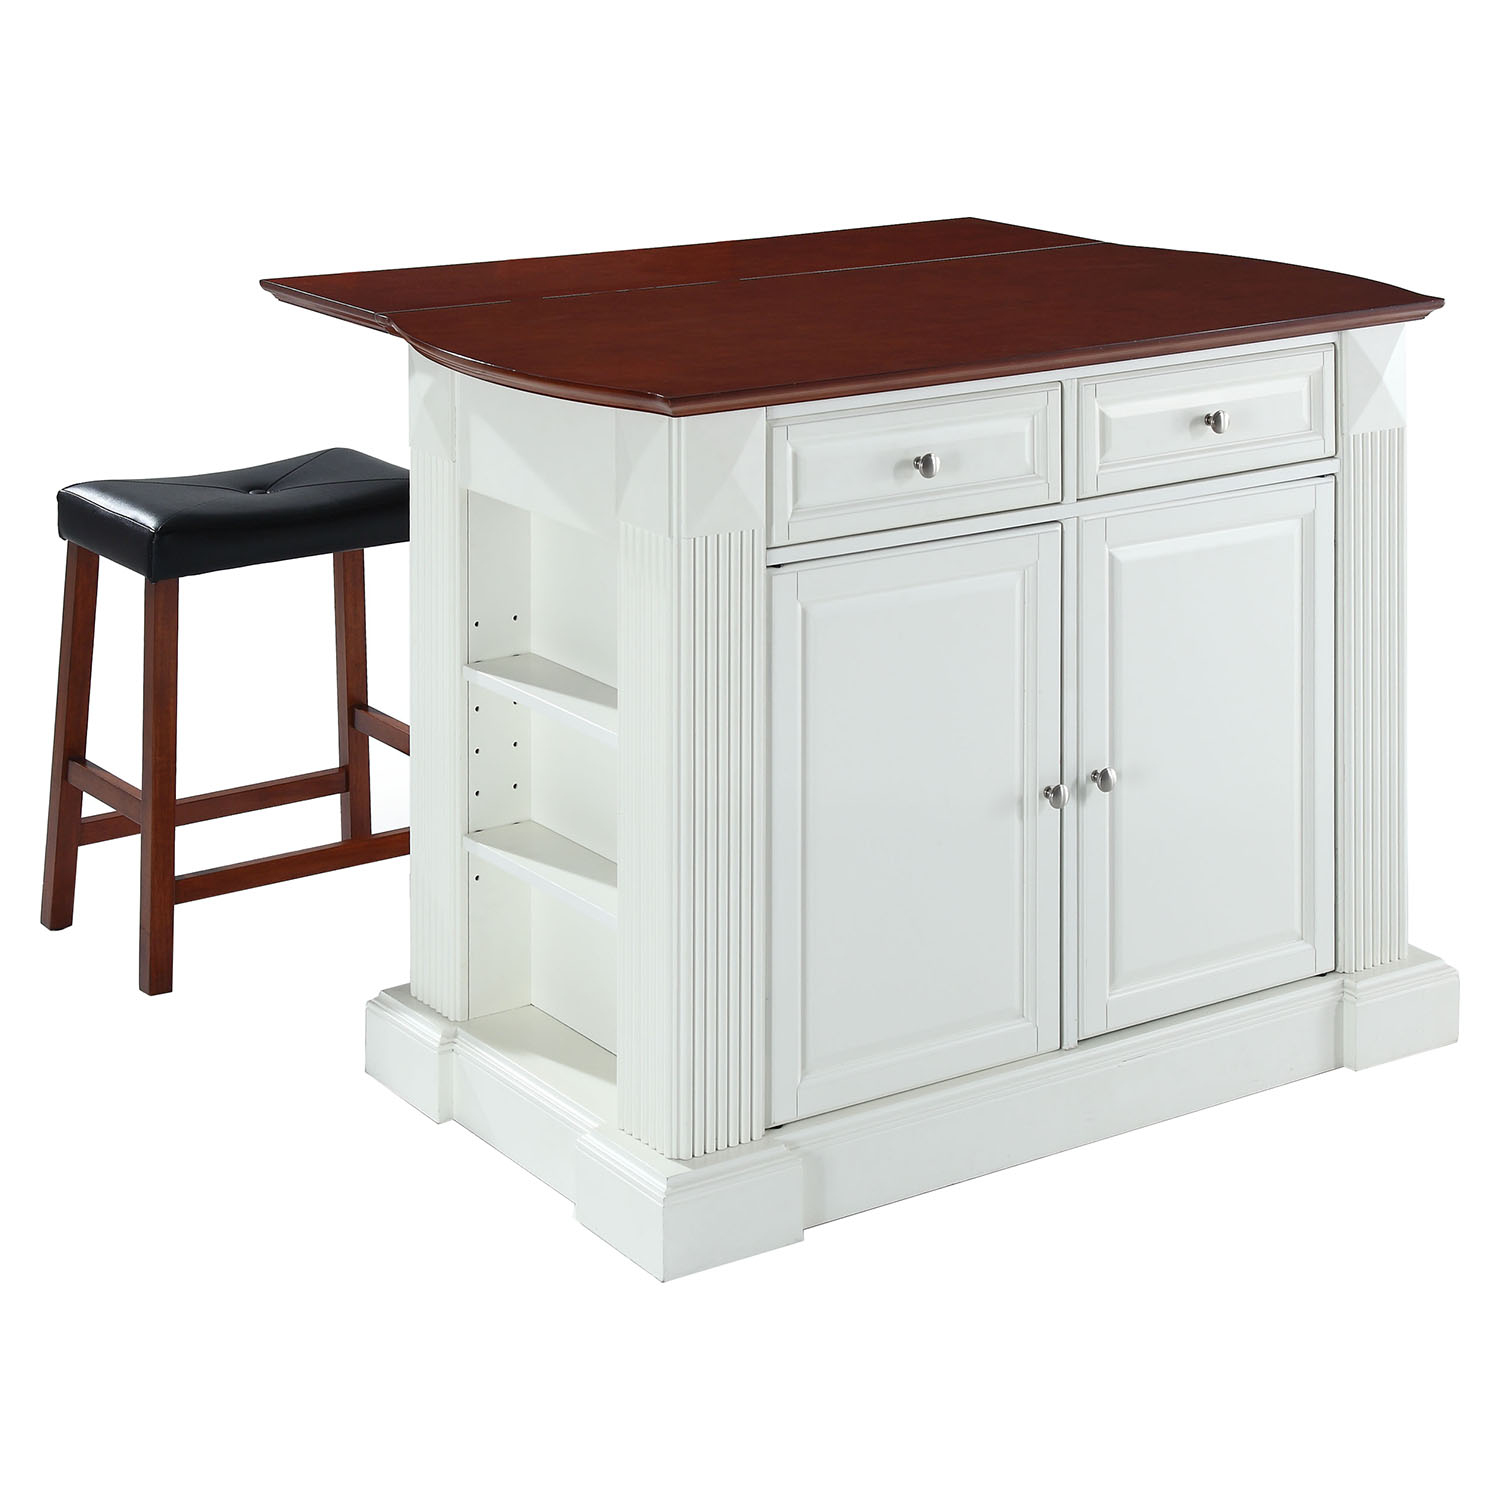 Drop Leaf Breakfast Bar Top Kitchen Island In Classic: Drop Leaf Breakfast Bar Top Kitchen Island In White With